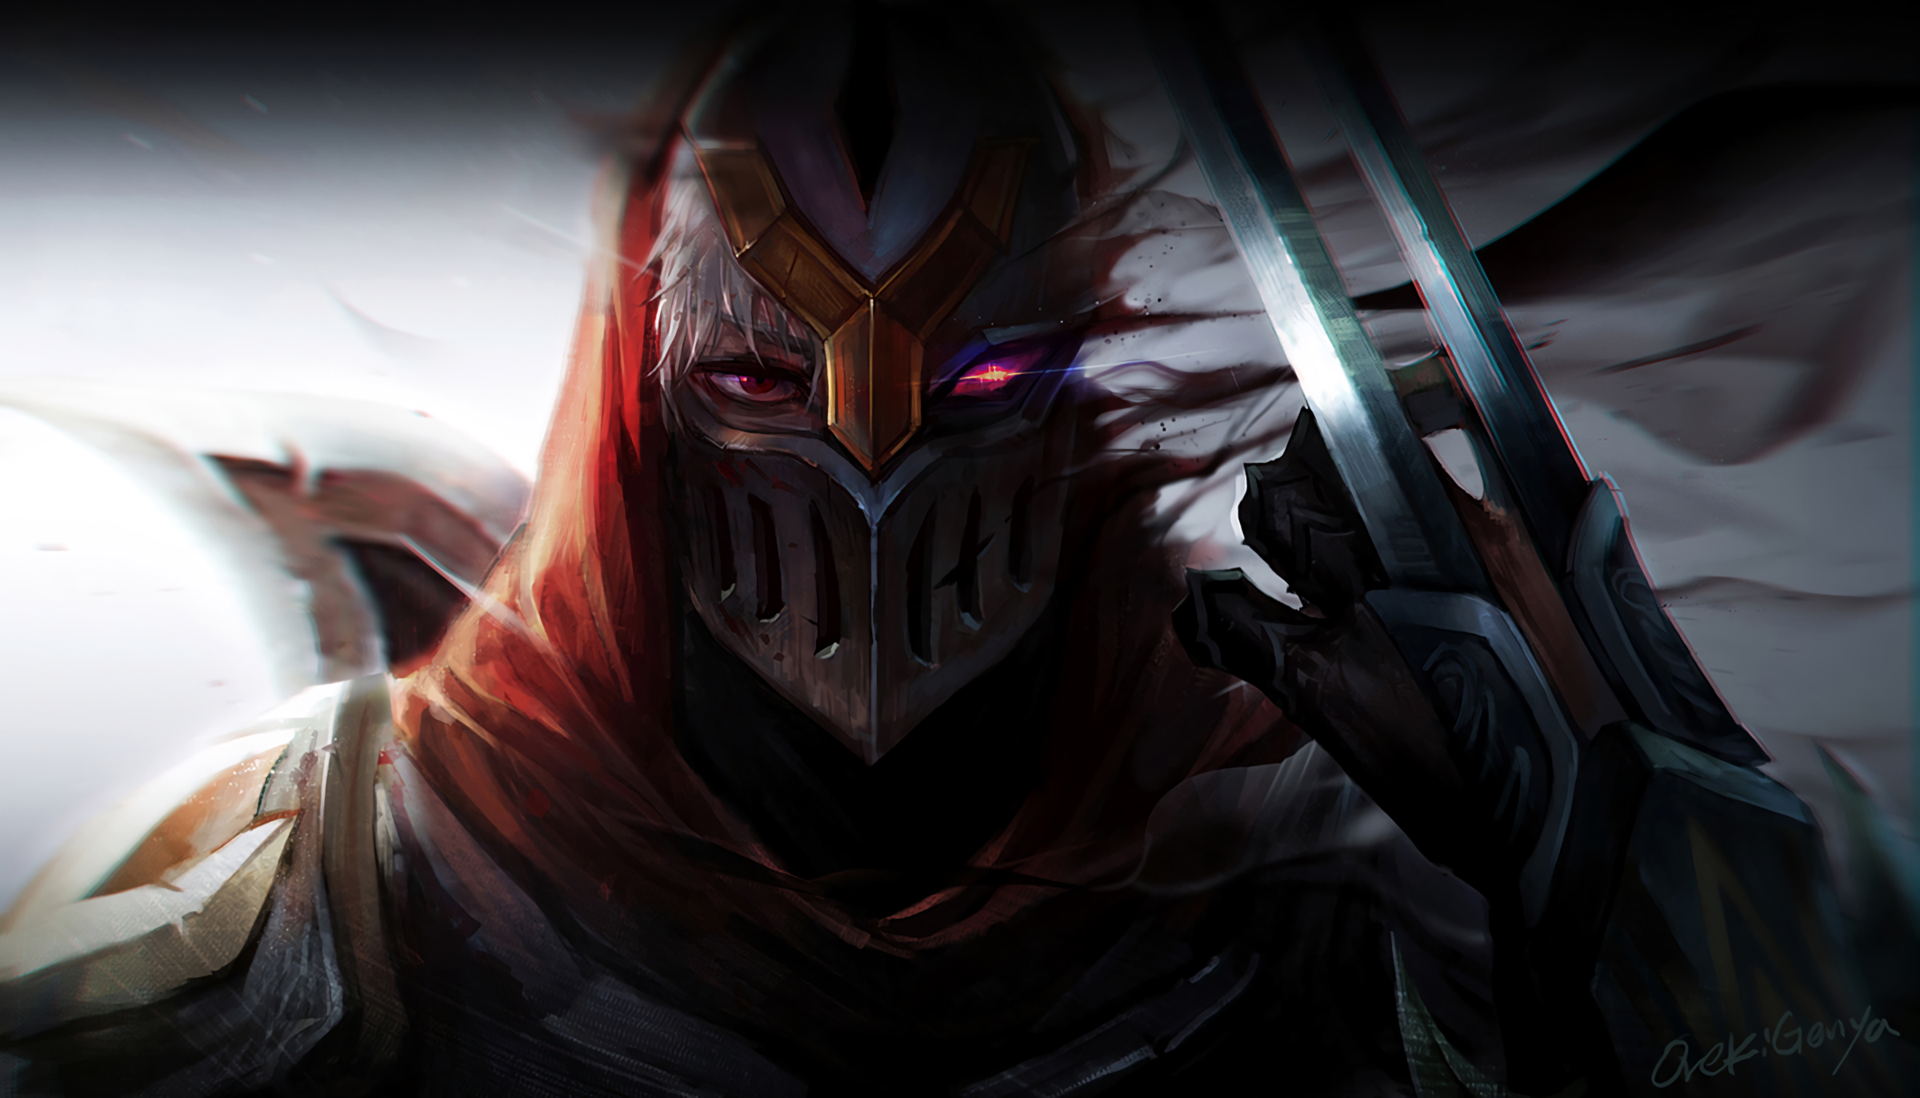 Video Game League Of Legends Zed Wallpaper Zed Wallpaper Lol